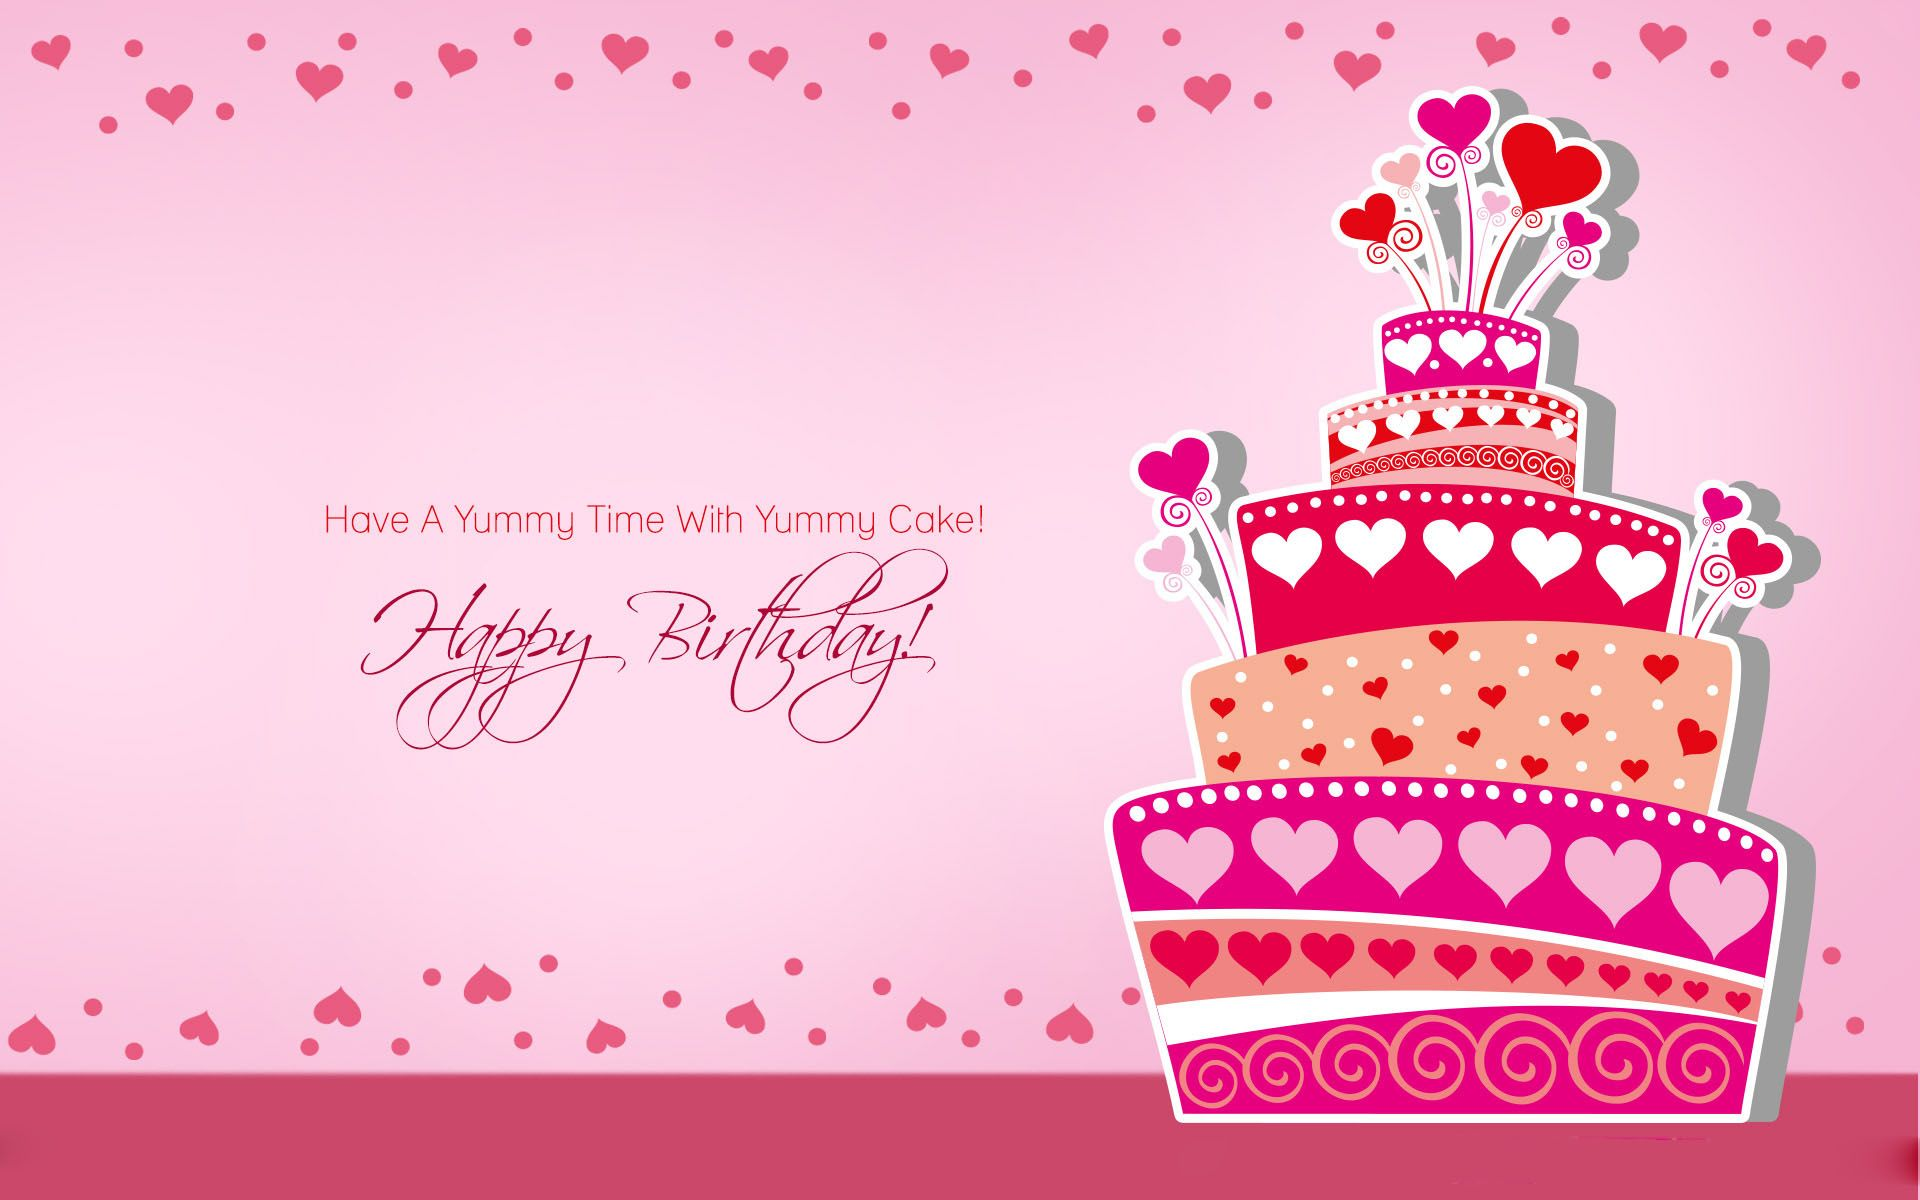 Amd clipart birthday Images Free Download Birthday Wallpapers